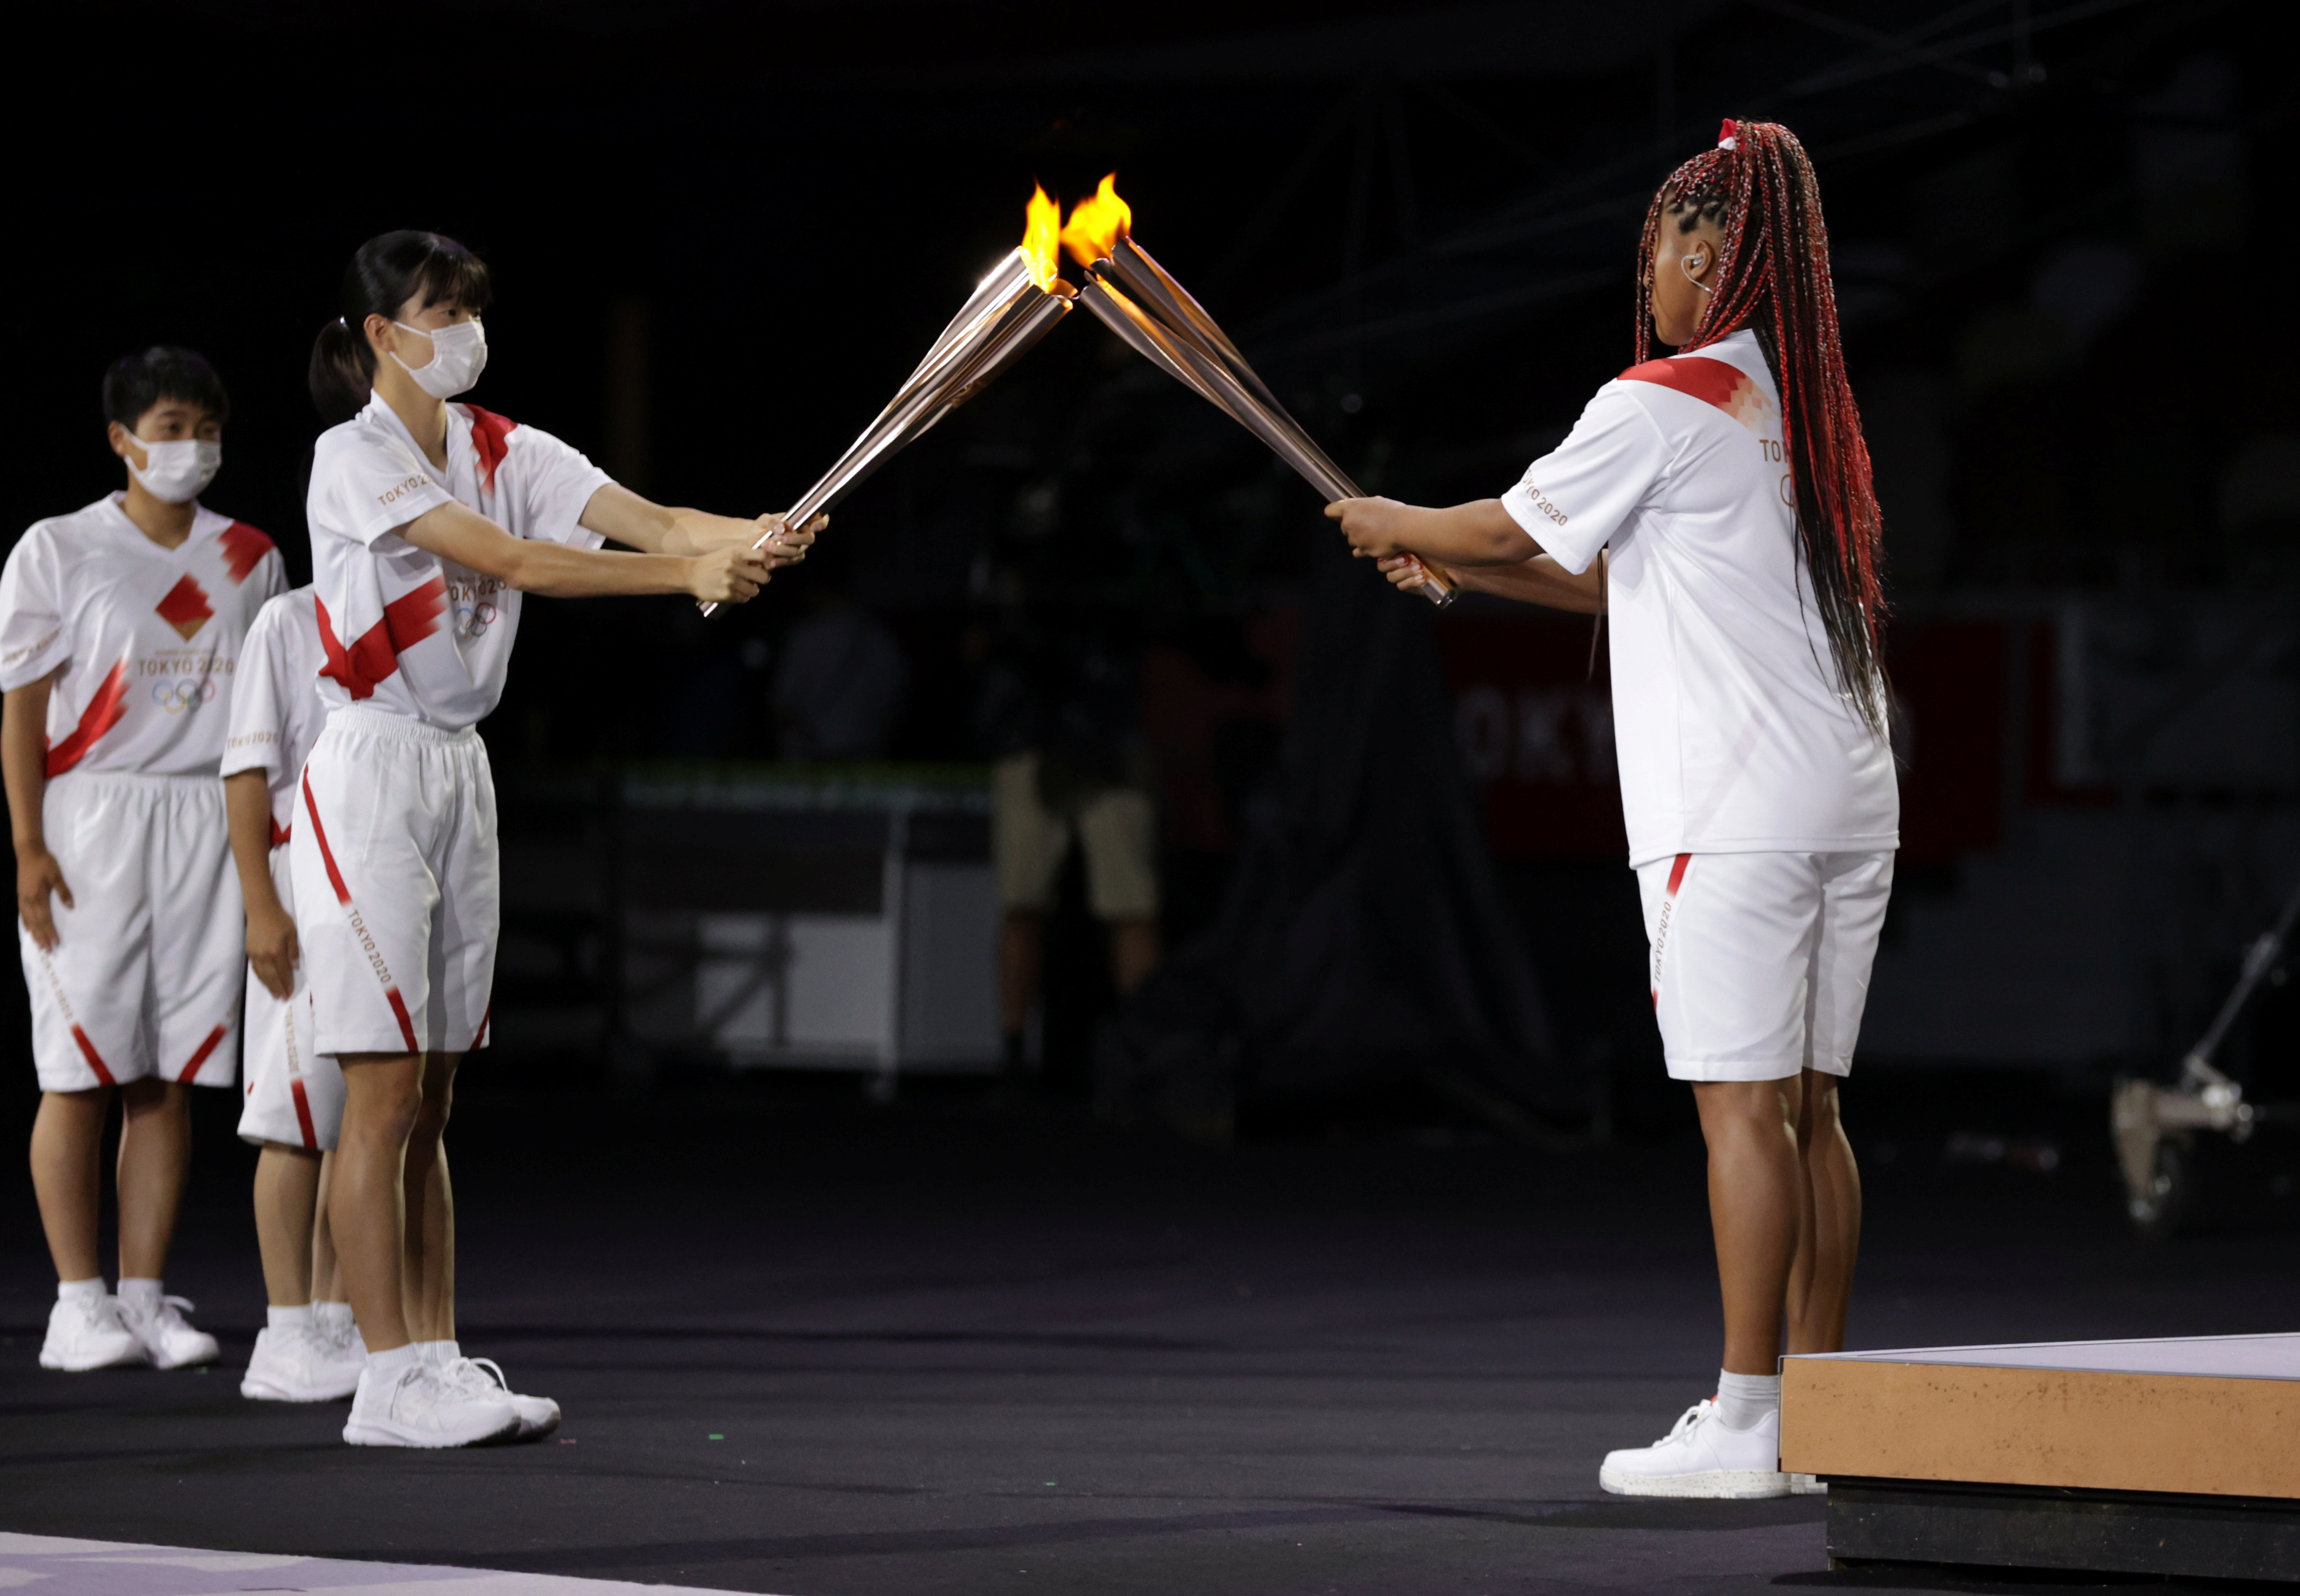 Tokyo 2020 Olympics - The Tokyo 2020 Olympics Opening Ceremony - Olympic Stadium, Tokyo, Japan - July 23, 2021. The Olympic flame is transferred to a torch carried by Naomi Osaka of Japan REUTERS/Hannah Mckay